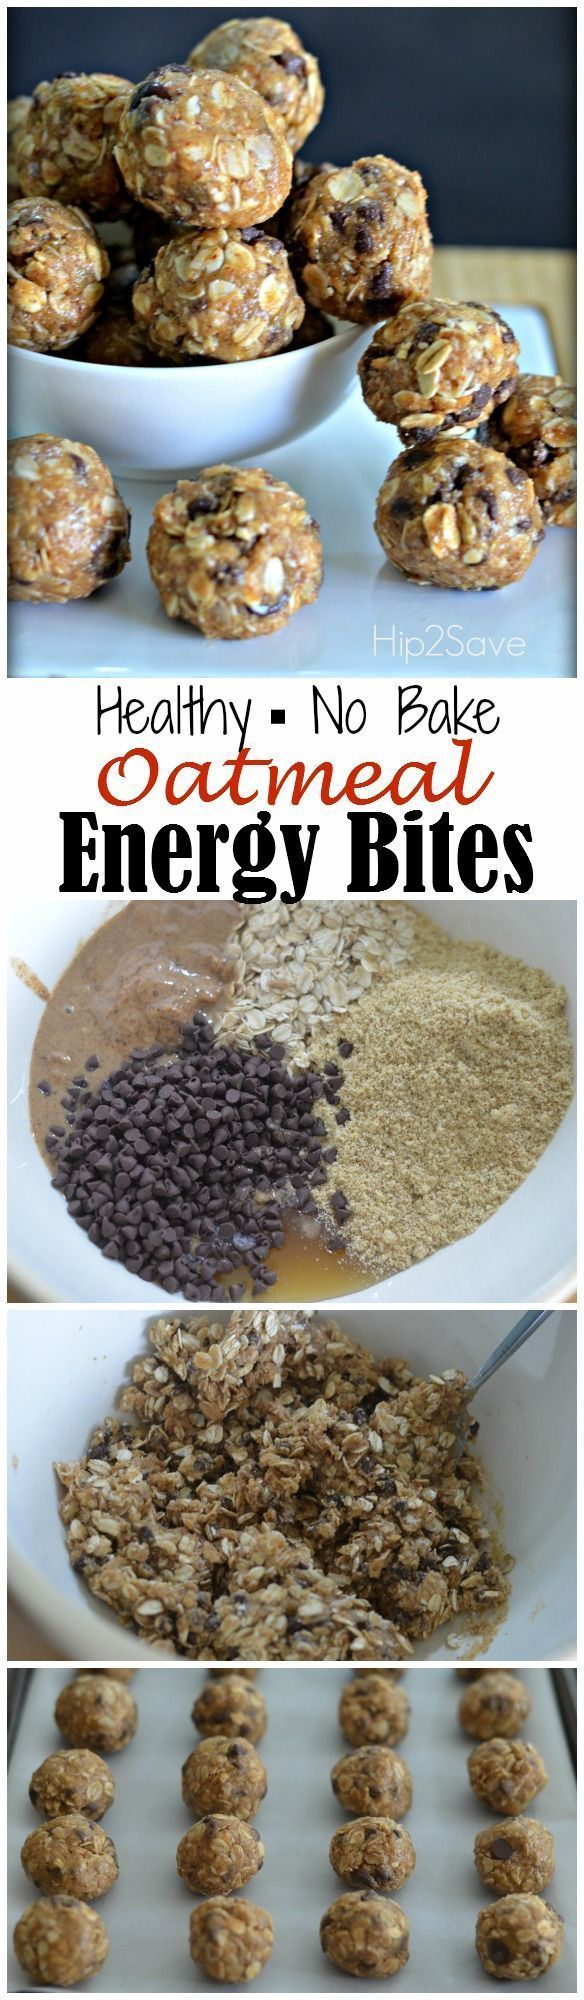 Oatmeal Energy Bites Healthy Kids Snacks For SchoolHealthy Camping SnacksCamping Ideas FoodHealthy